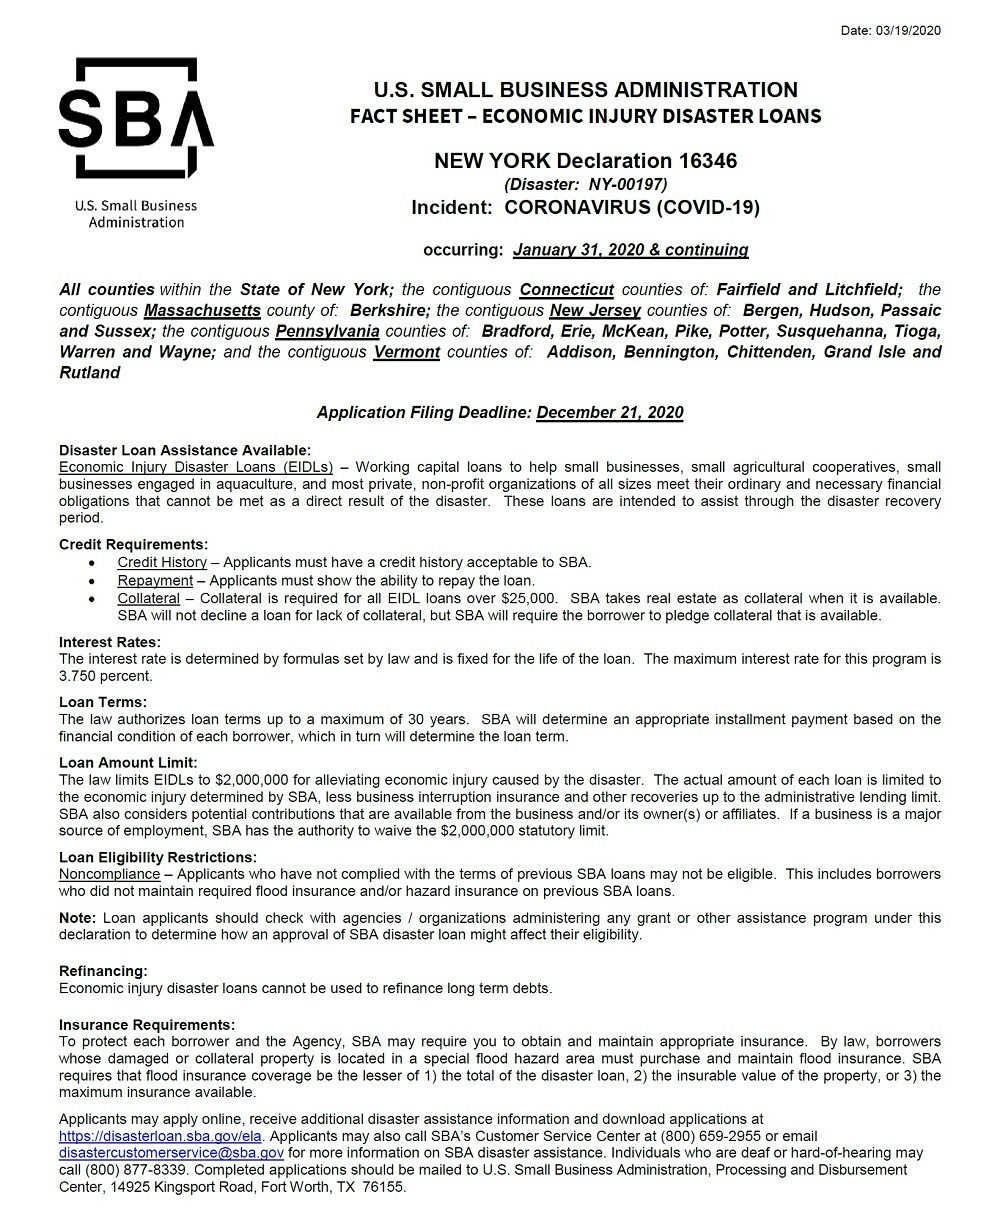 SBA fact sheet